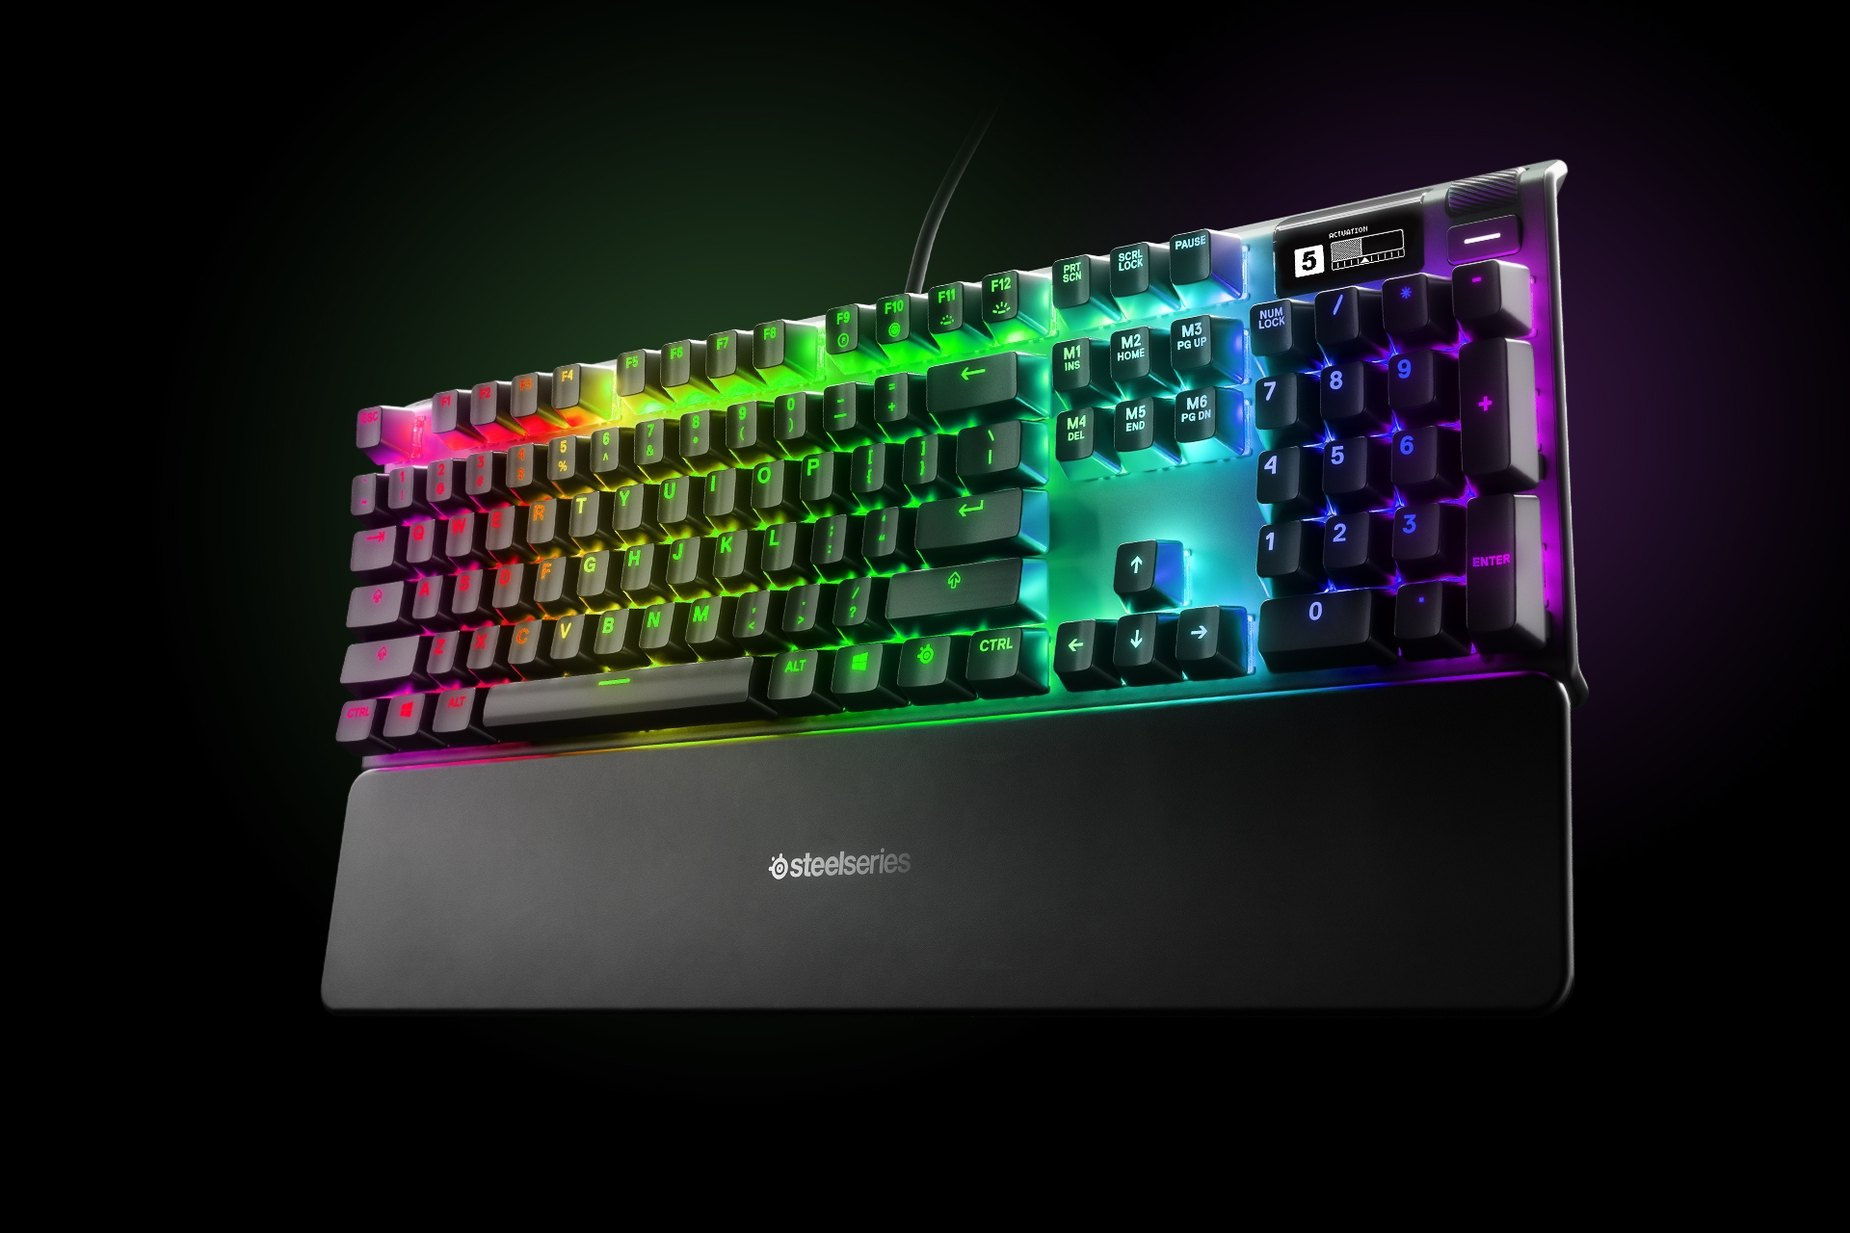 UK English - Apex Pro gaming keyboard with the illumination lit up on dark background, also shows the OLED screen and controls used to change settings, switch actuation, and adjust audio